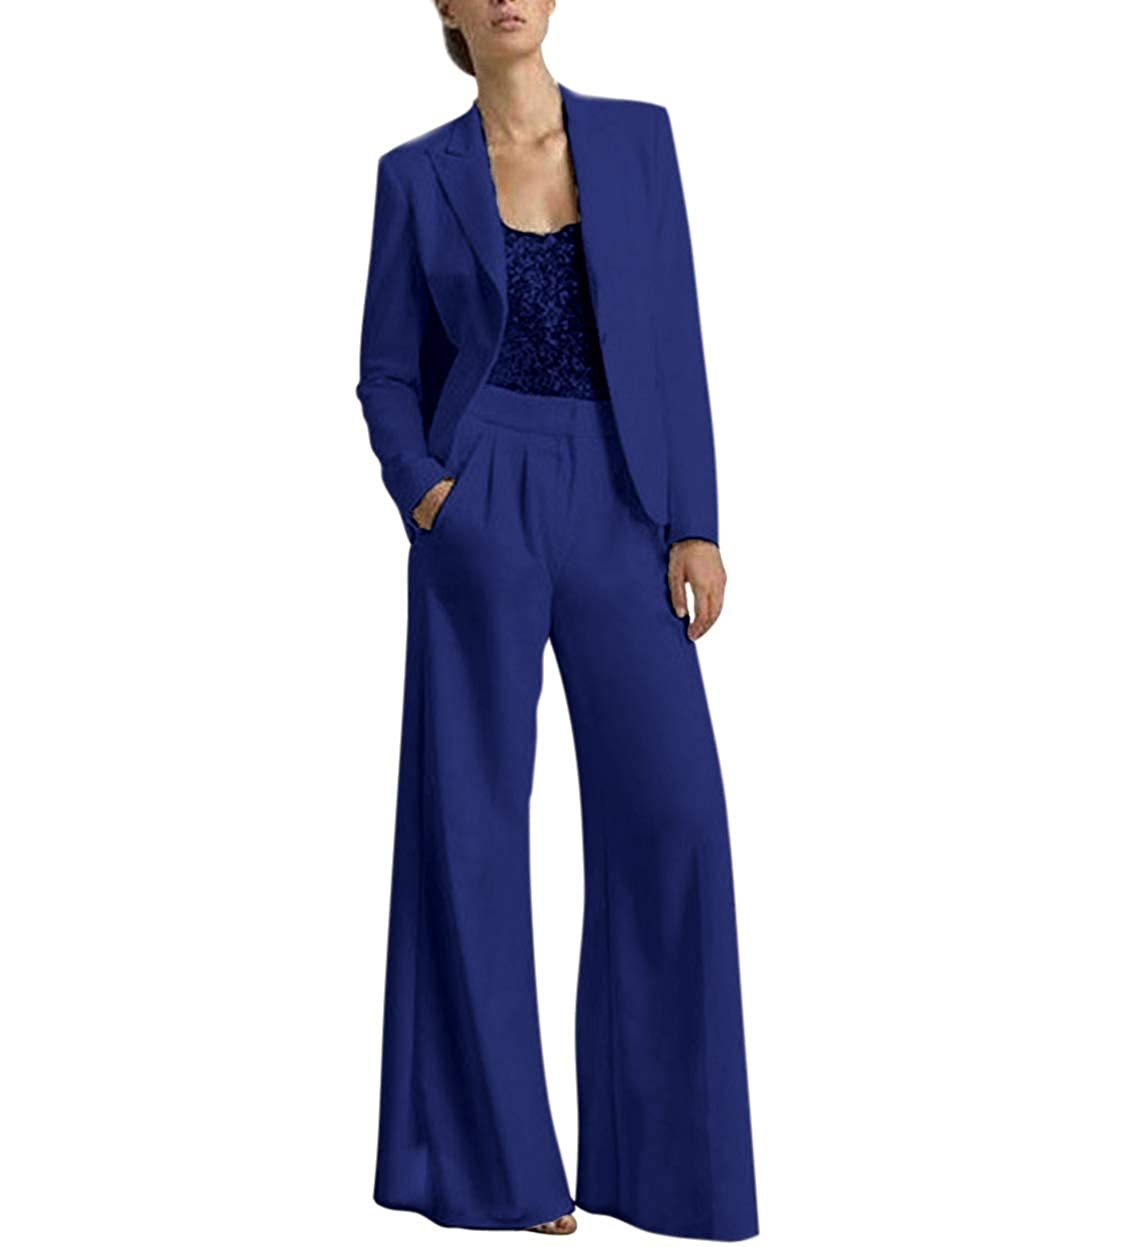 Royal bluee TBB Women's 2 Pieces Mother of The Bride Dress Pant Suits with Polyester Jacket Office Lady